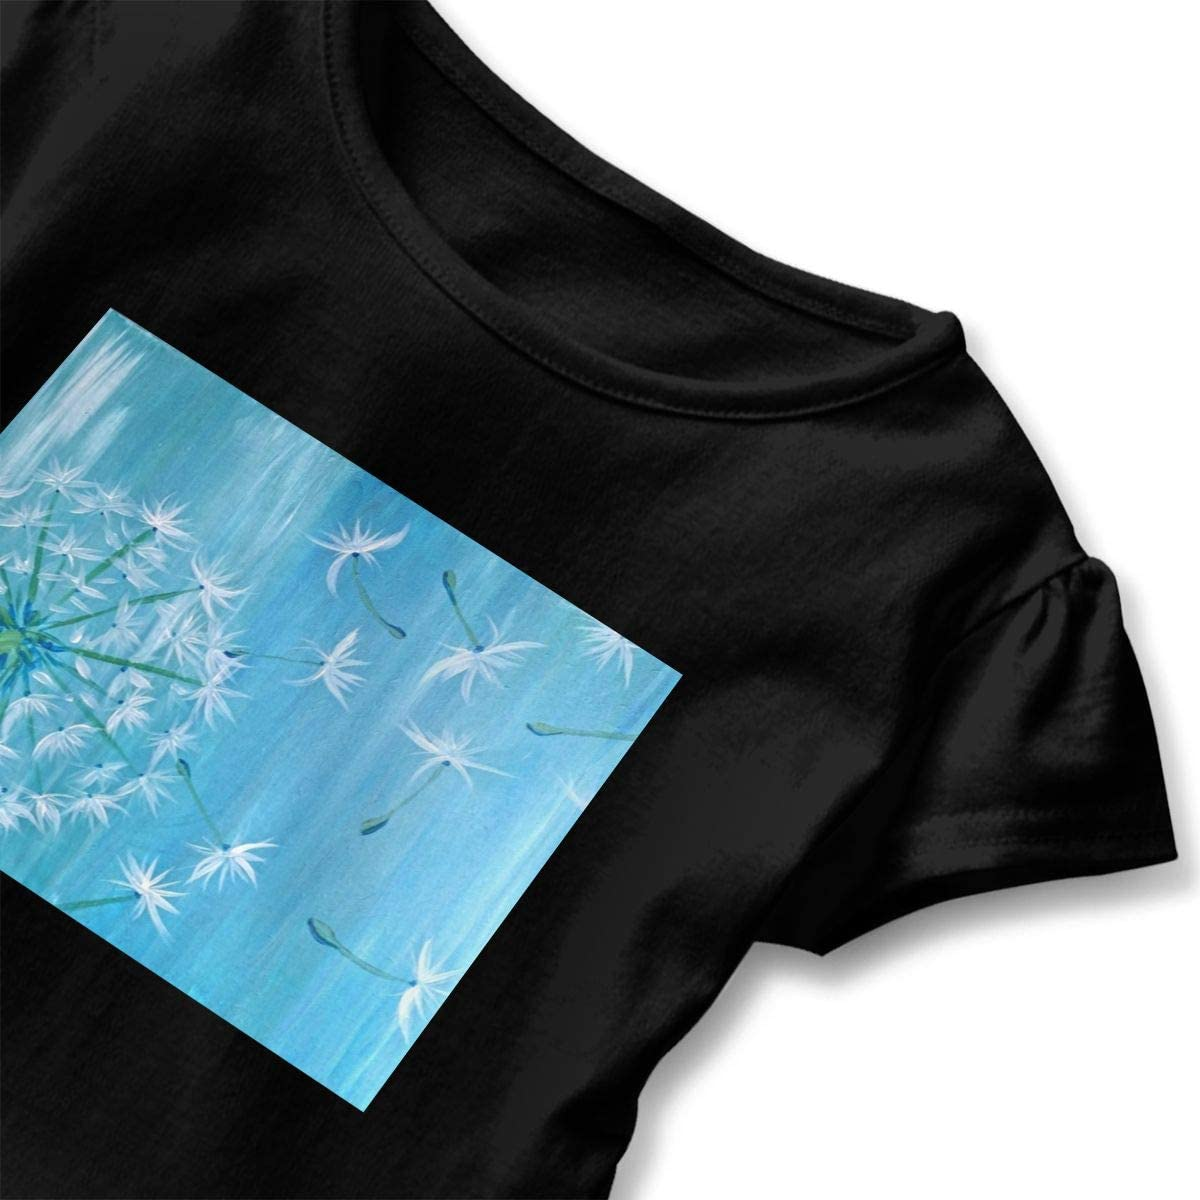 Dandelion Blue Shirt Baby Girls Flounced Casual Tee Shirts for 2-6 Years Old Baby